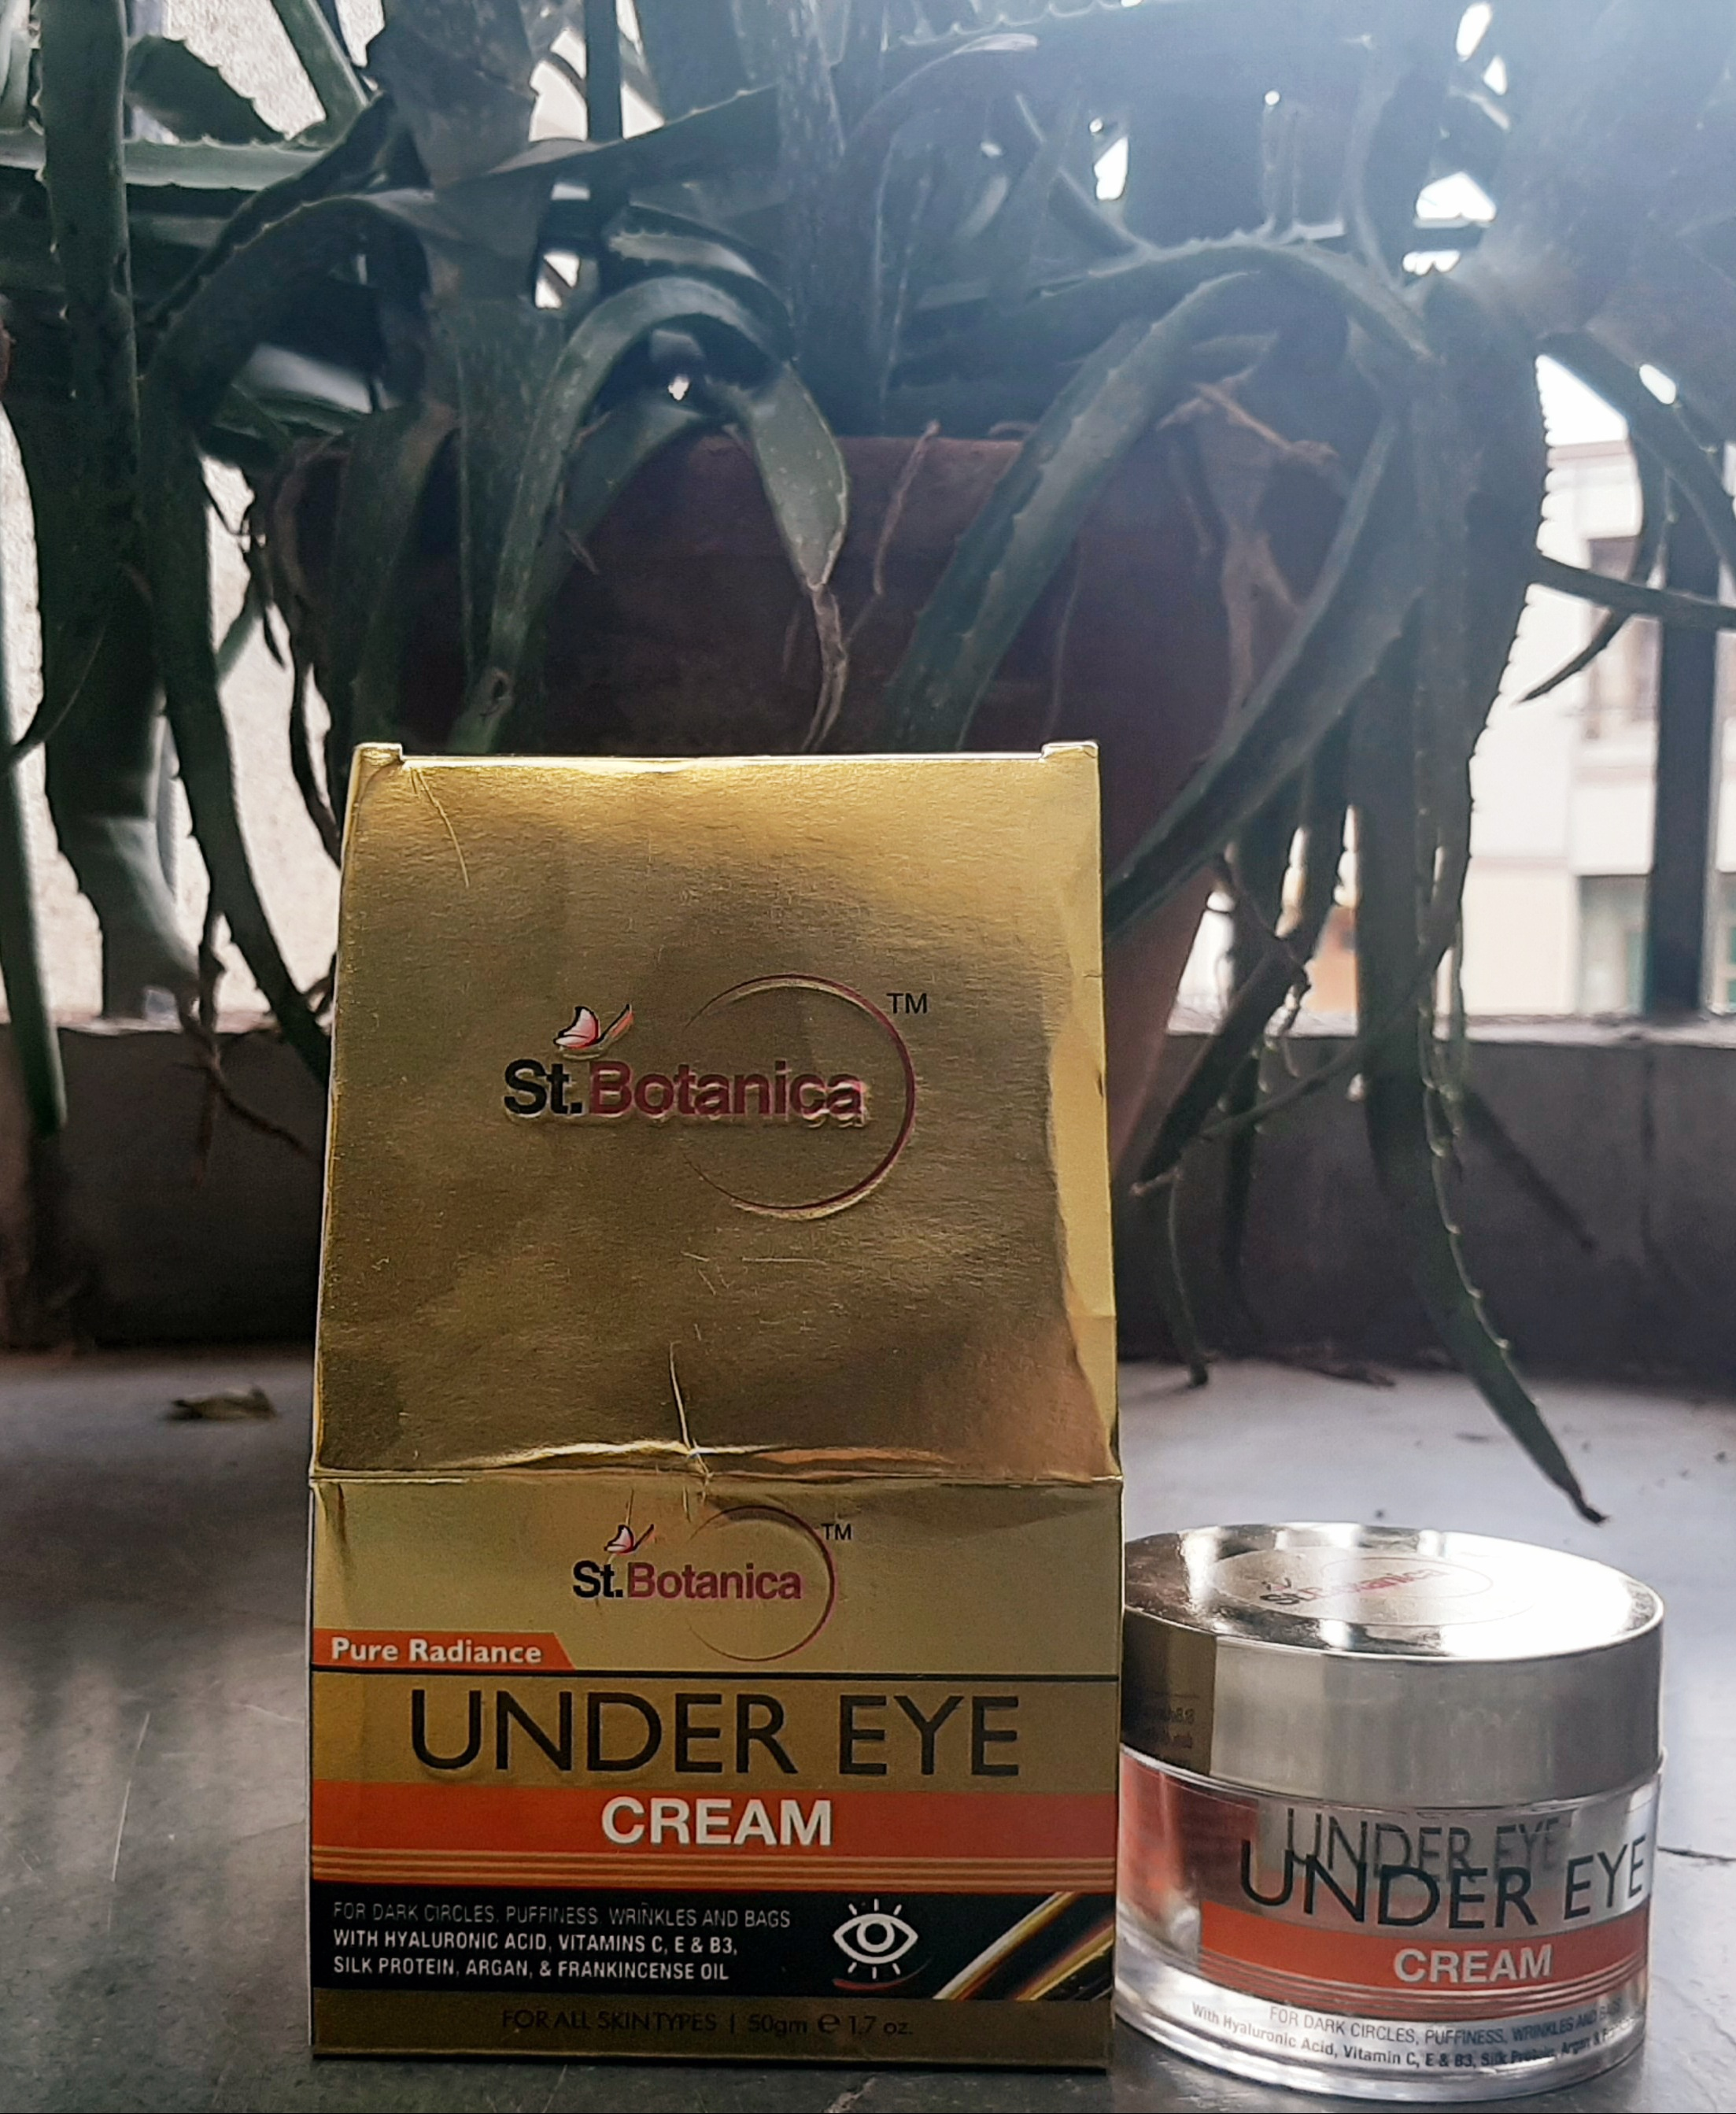 StBotanica Pure Radiance Under Eye Cream-No dark circles and wrinkles-By renu_sharma_